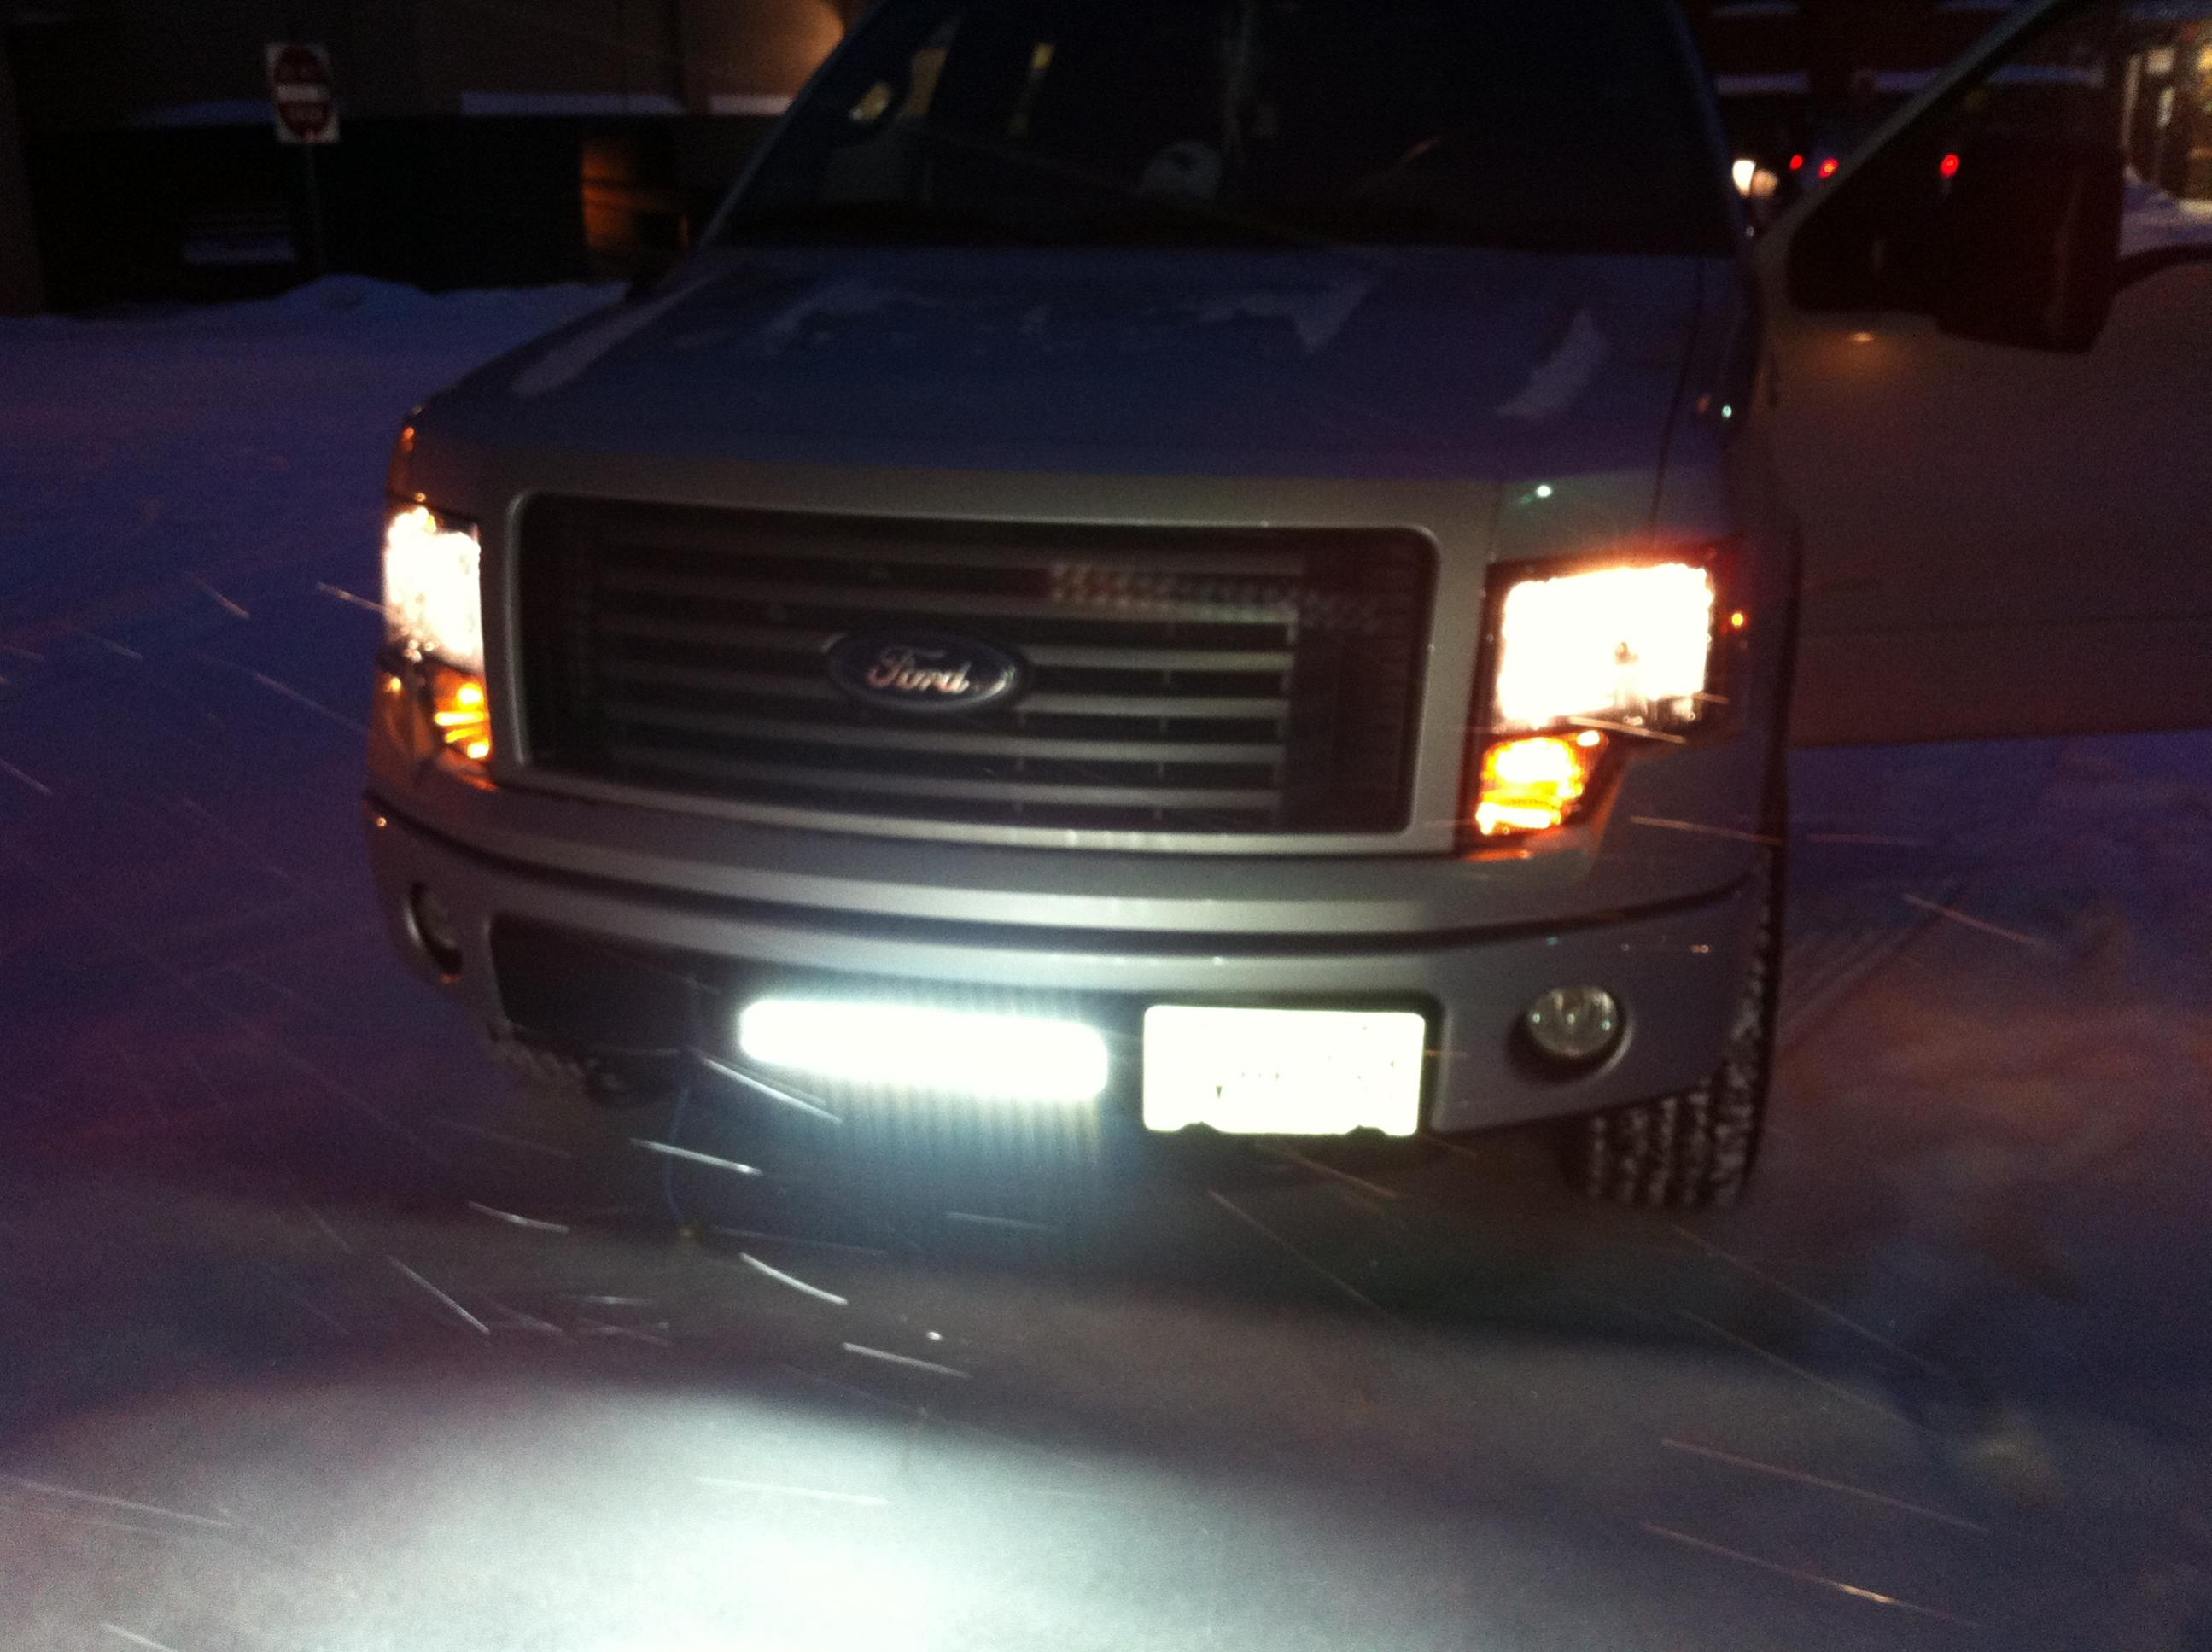 dp amazon com gen profile lighting technology low led light truck warning emergency wolo lights lightbar bar b lookout